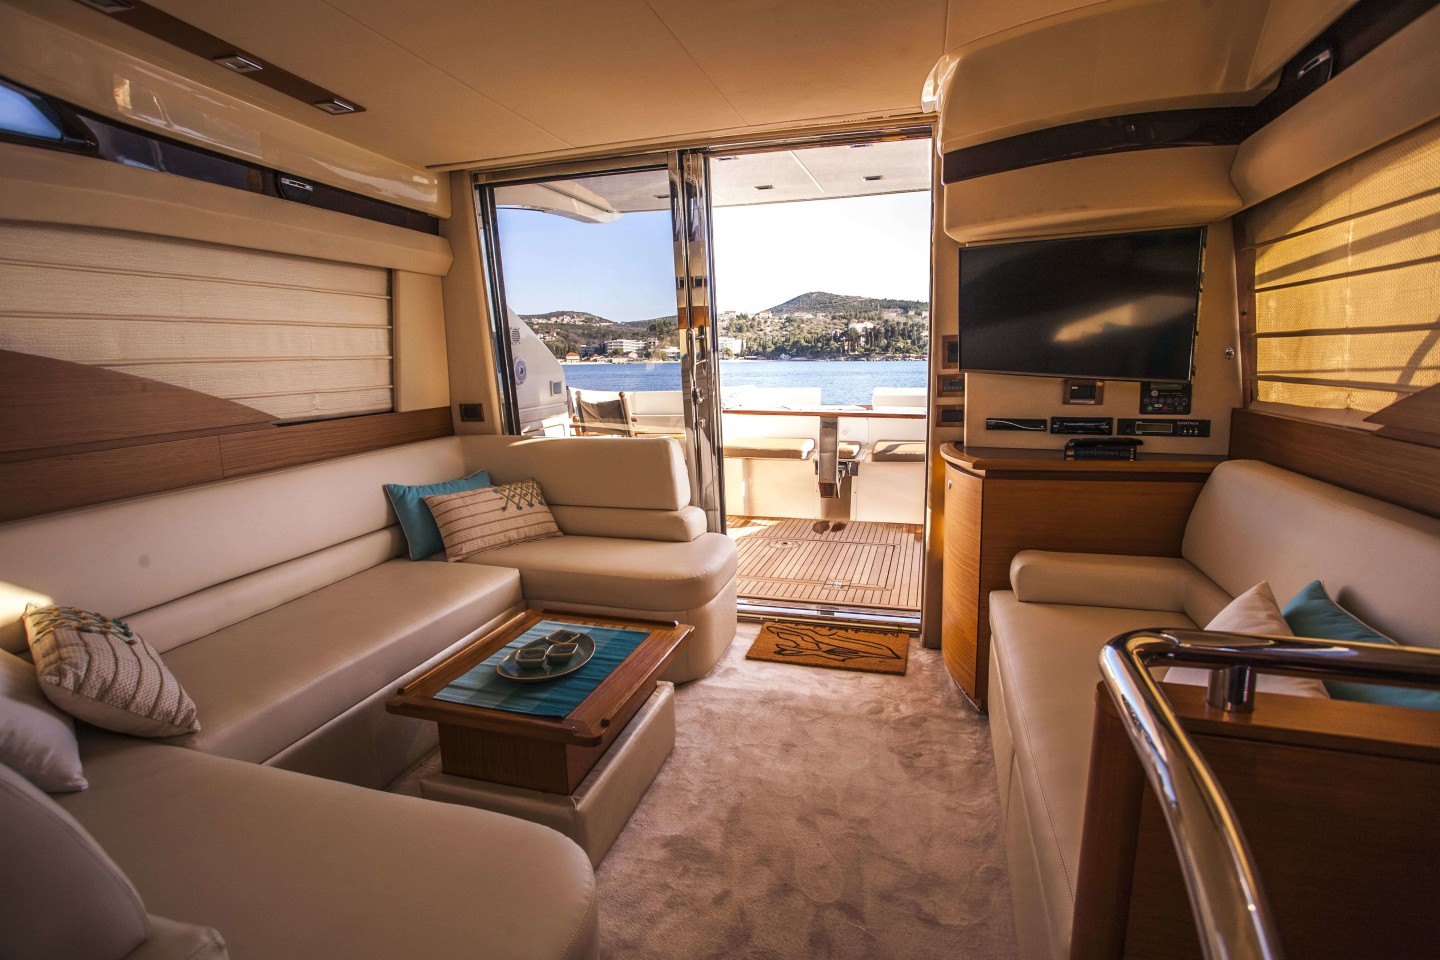 azimut 43 dubrovnik 30 luxury yacht saloon living area